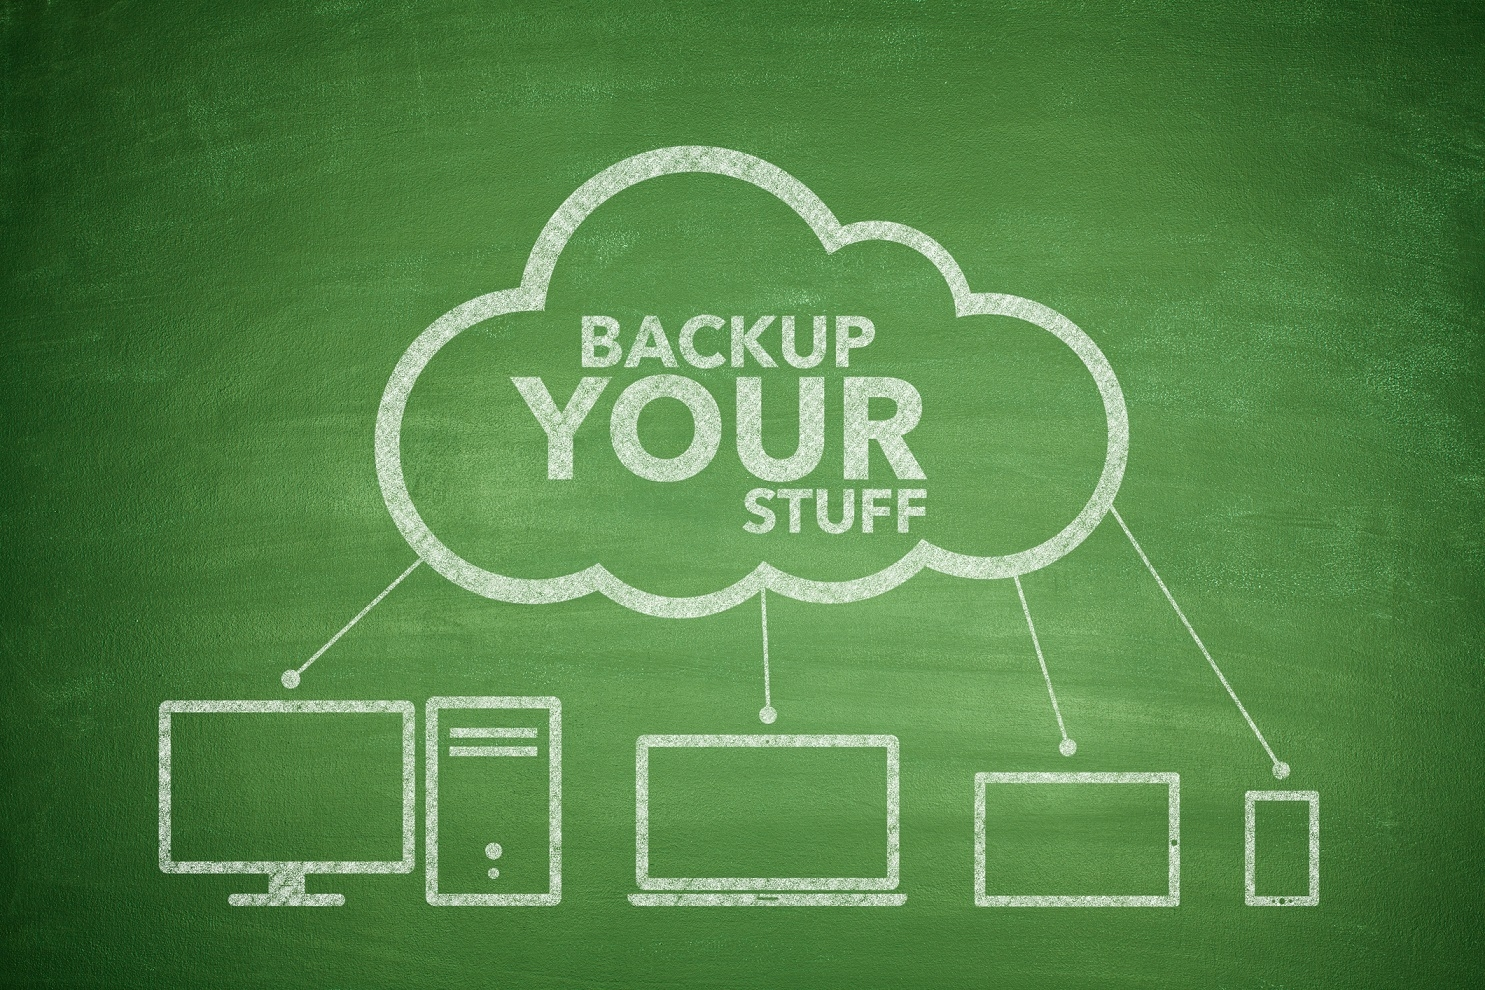 Why & How to Backup Your Computer